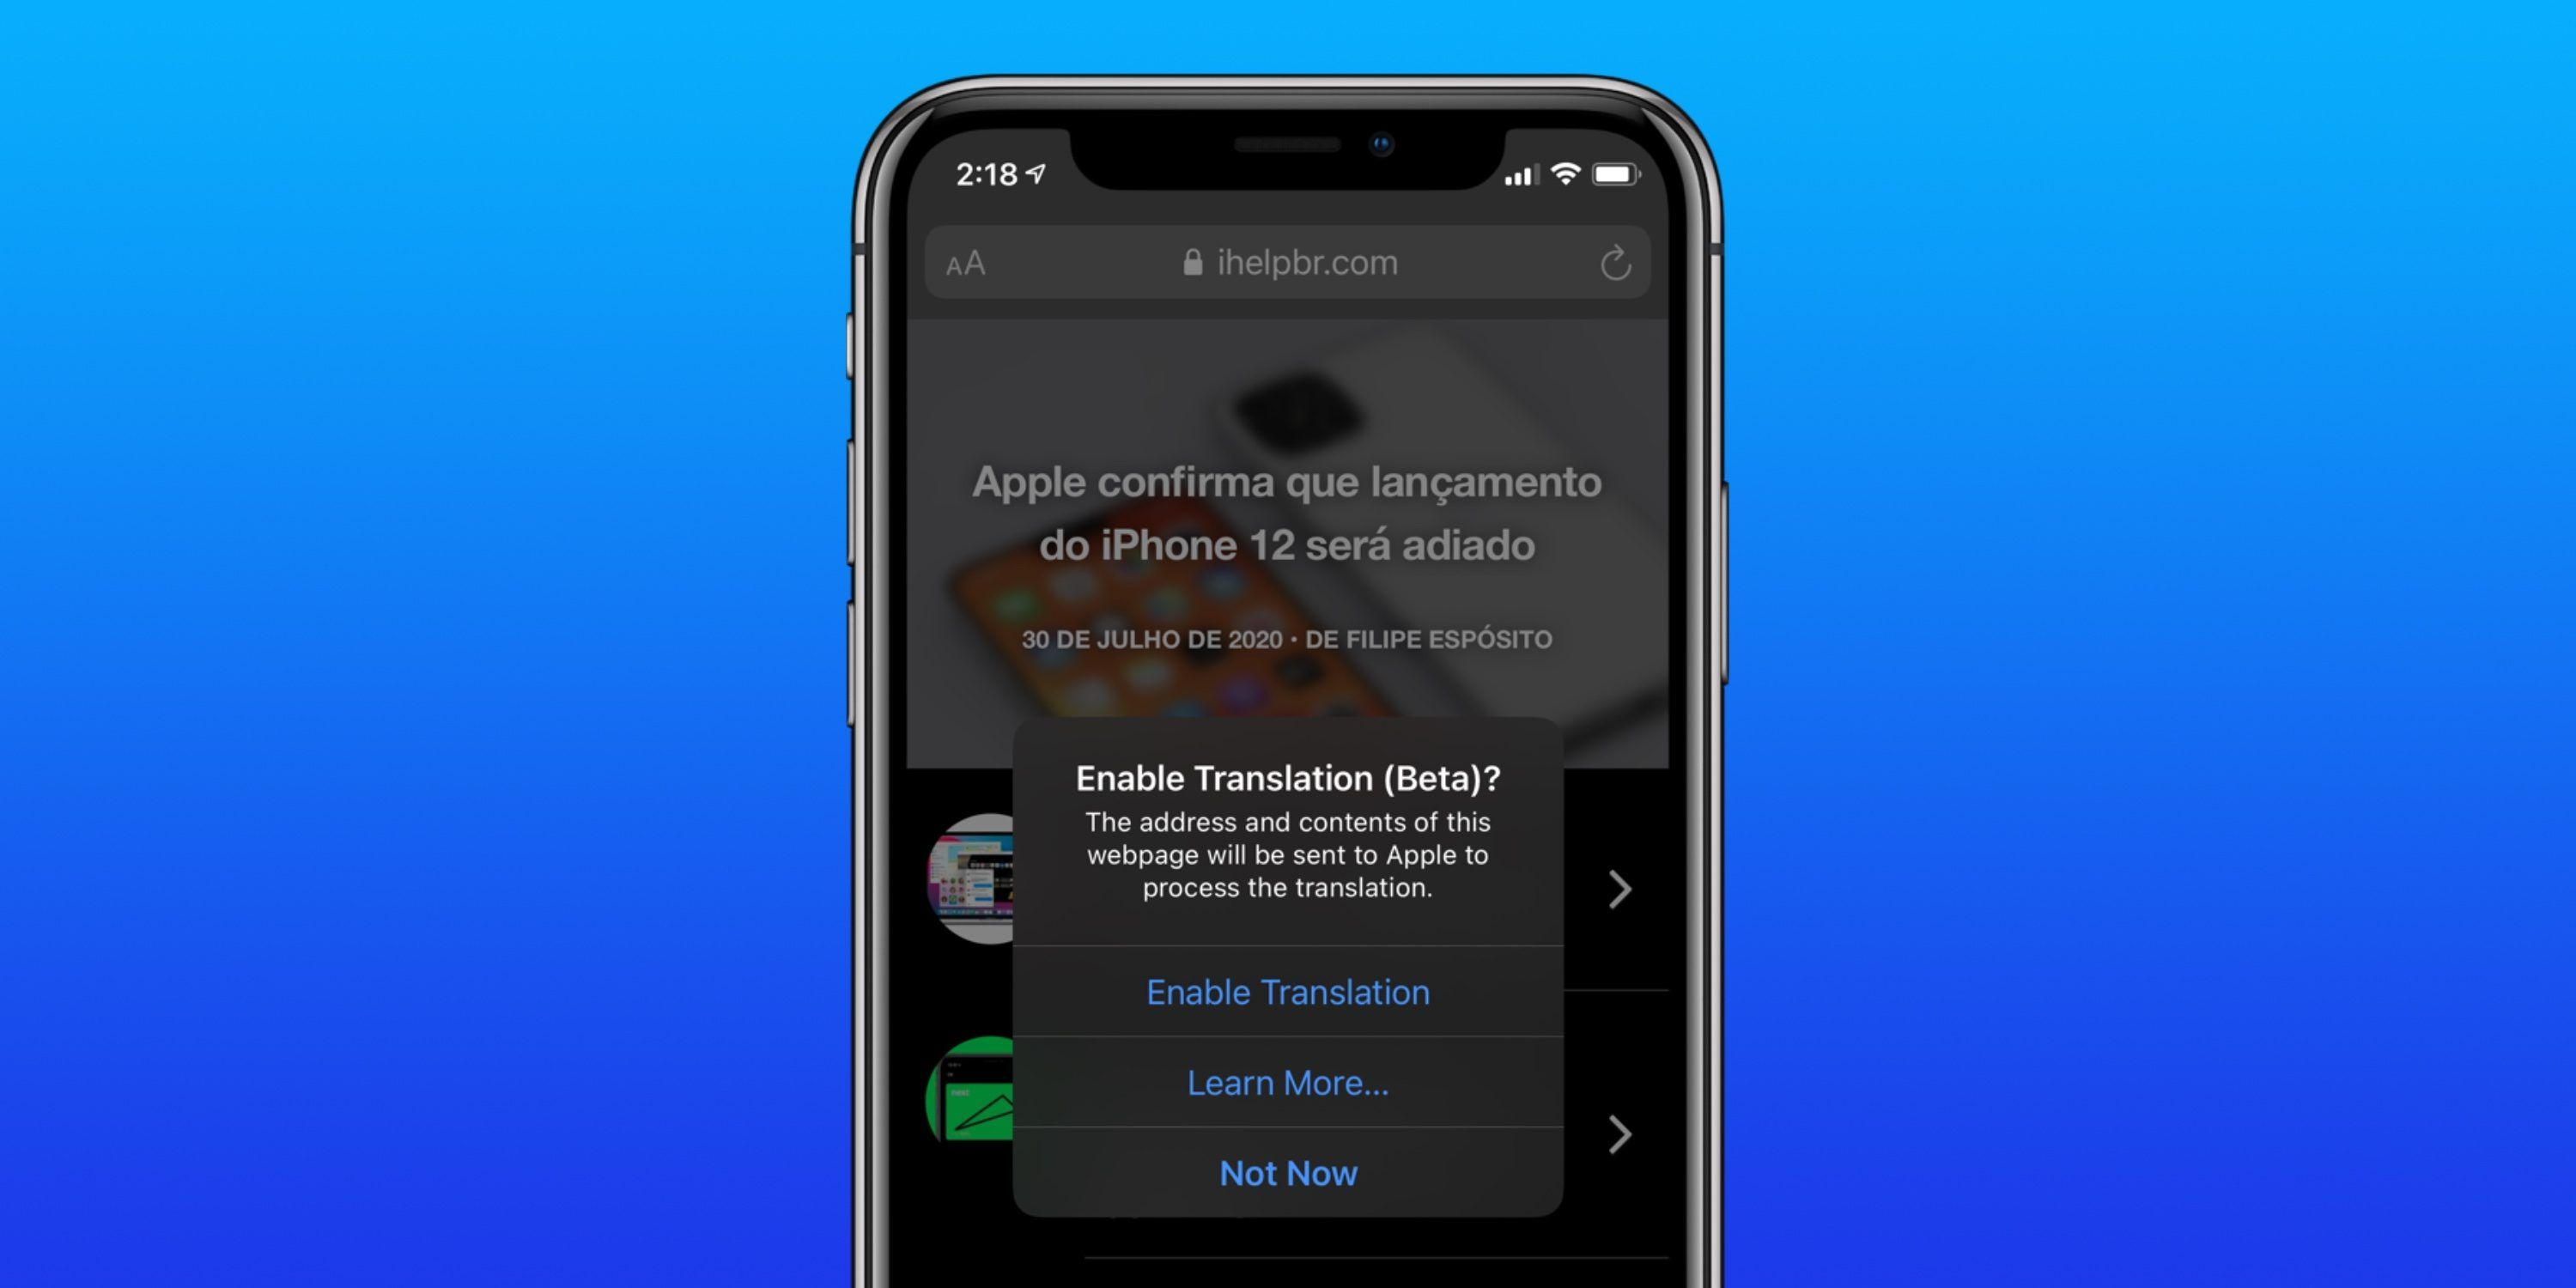 1b92a7d29aaf52be9dedf241e812aa07 - How Do I Get Safari To Translate A Page